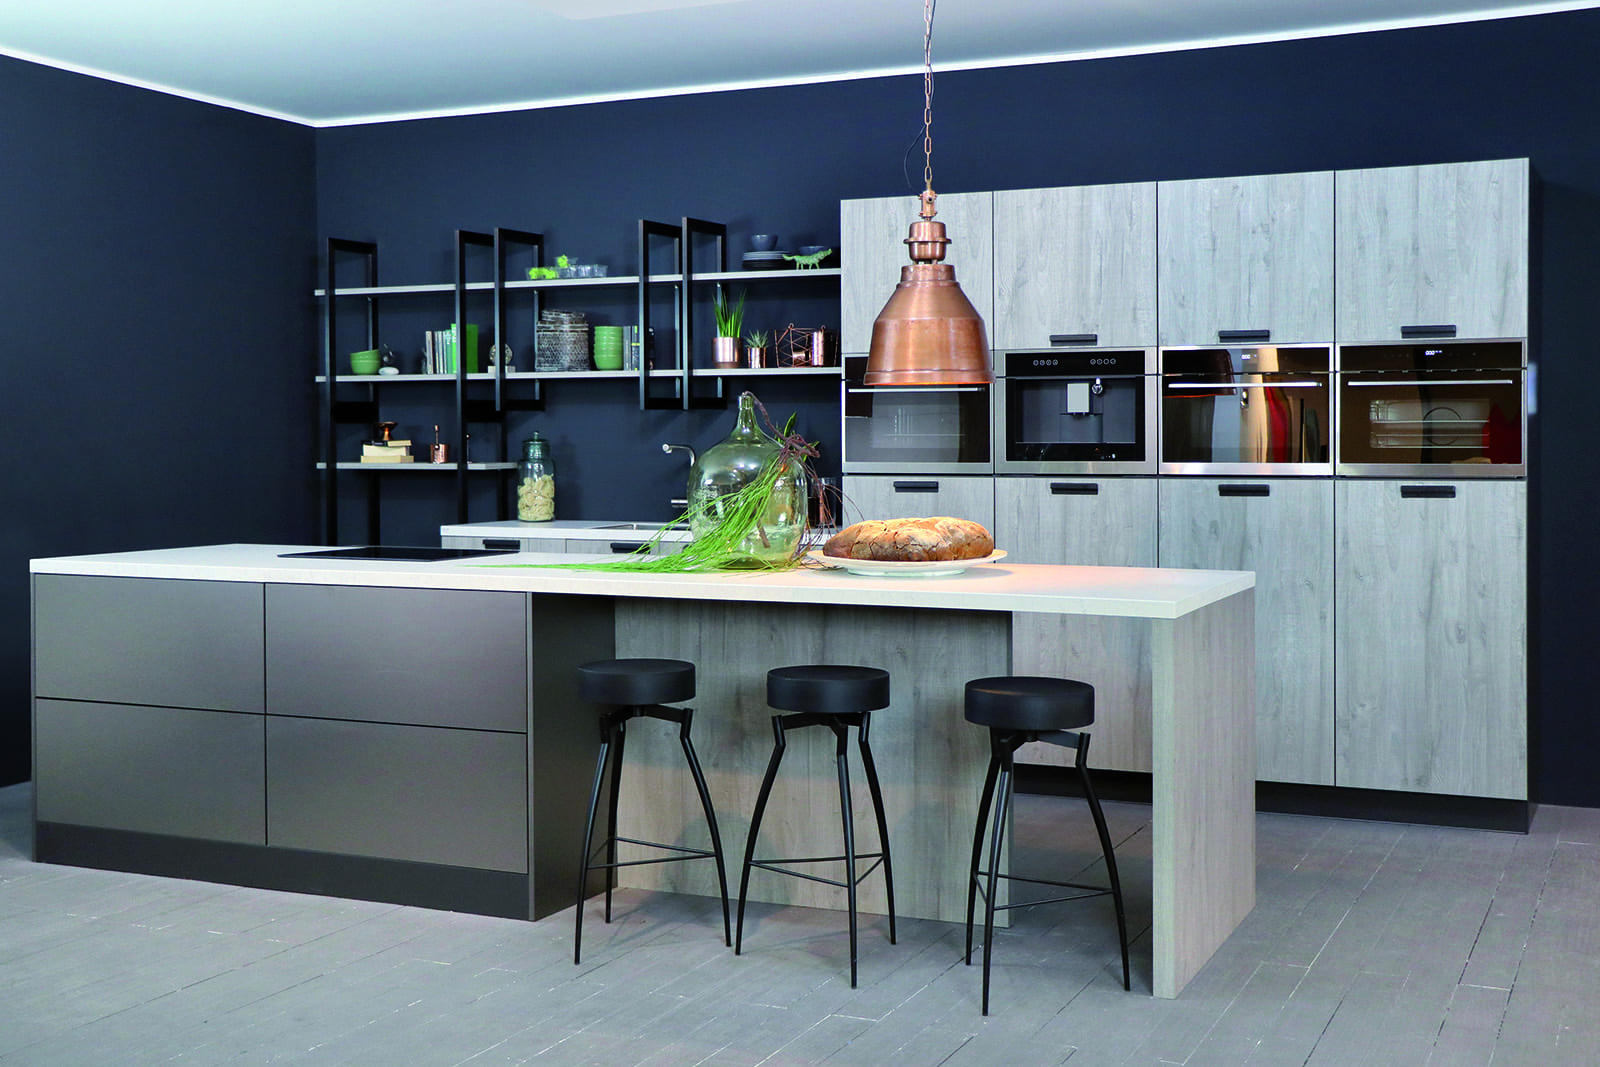 Rotpunk Metallic Look Pearl and Sherwood Mahattan Wood Island Kitchen | Net Kitchens Direct